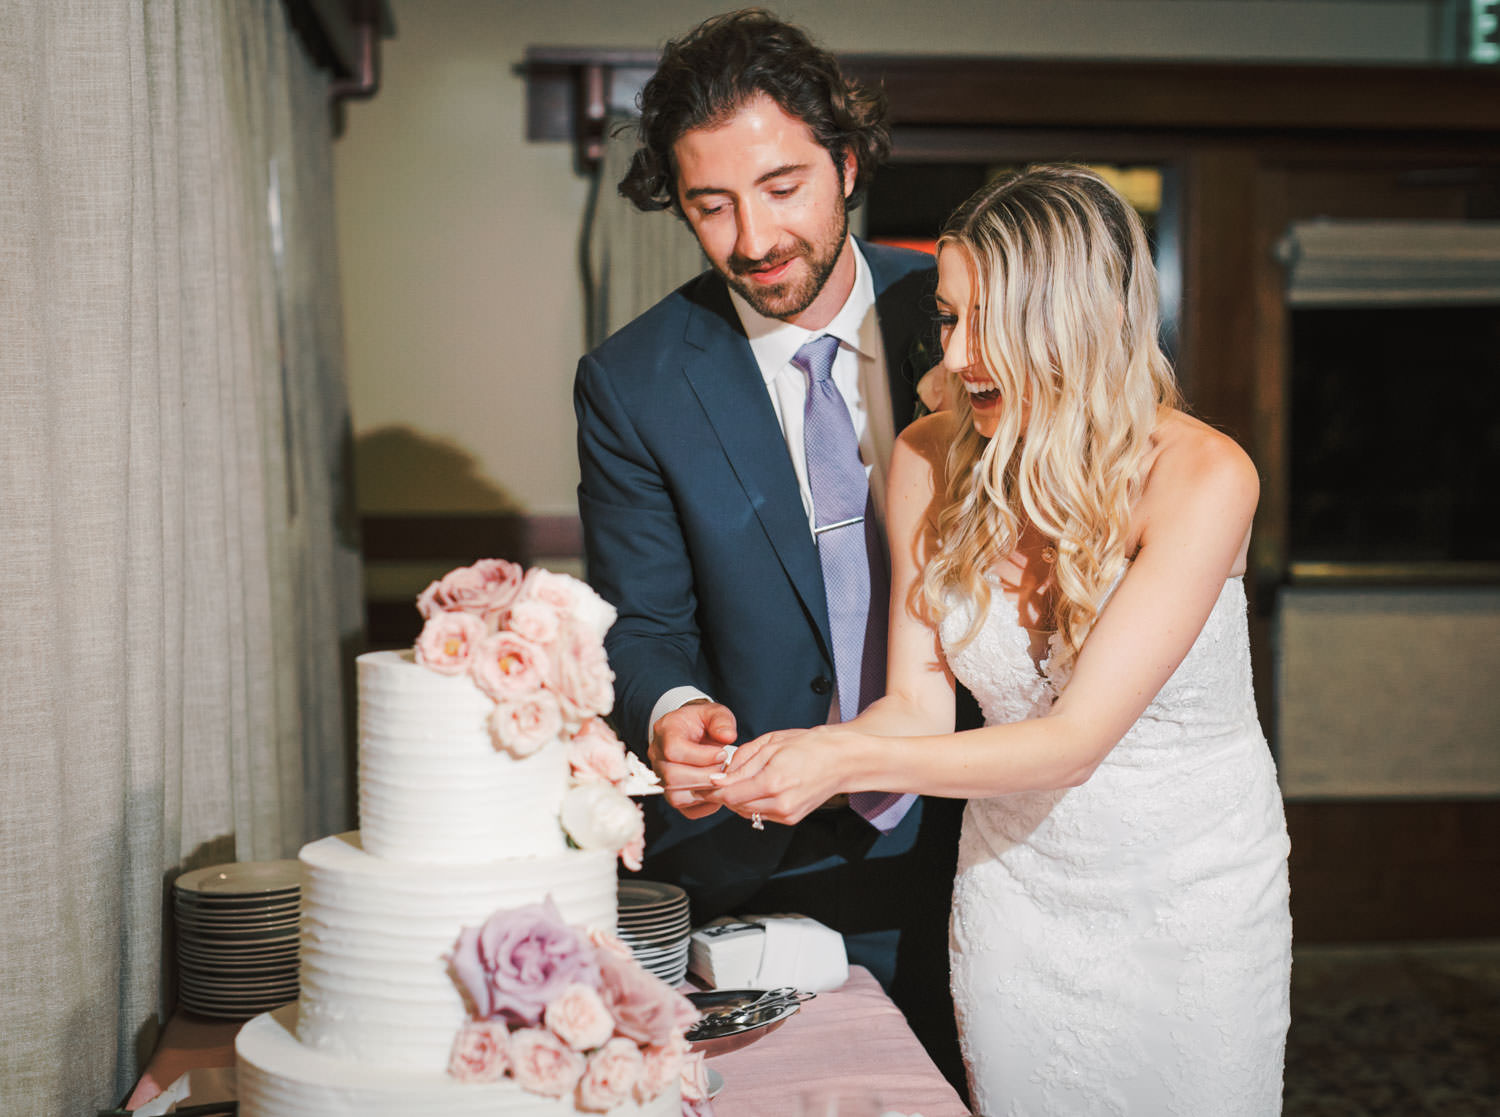 Bride and groom cut their white cake topped with pink and lavender flowers, The Lodge at Torrey Pines wedding, photography by Cavin Elizabeth Photography